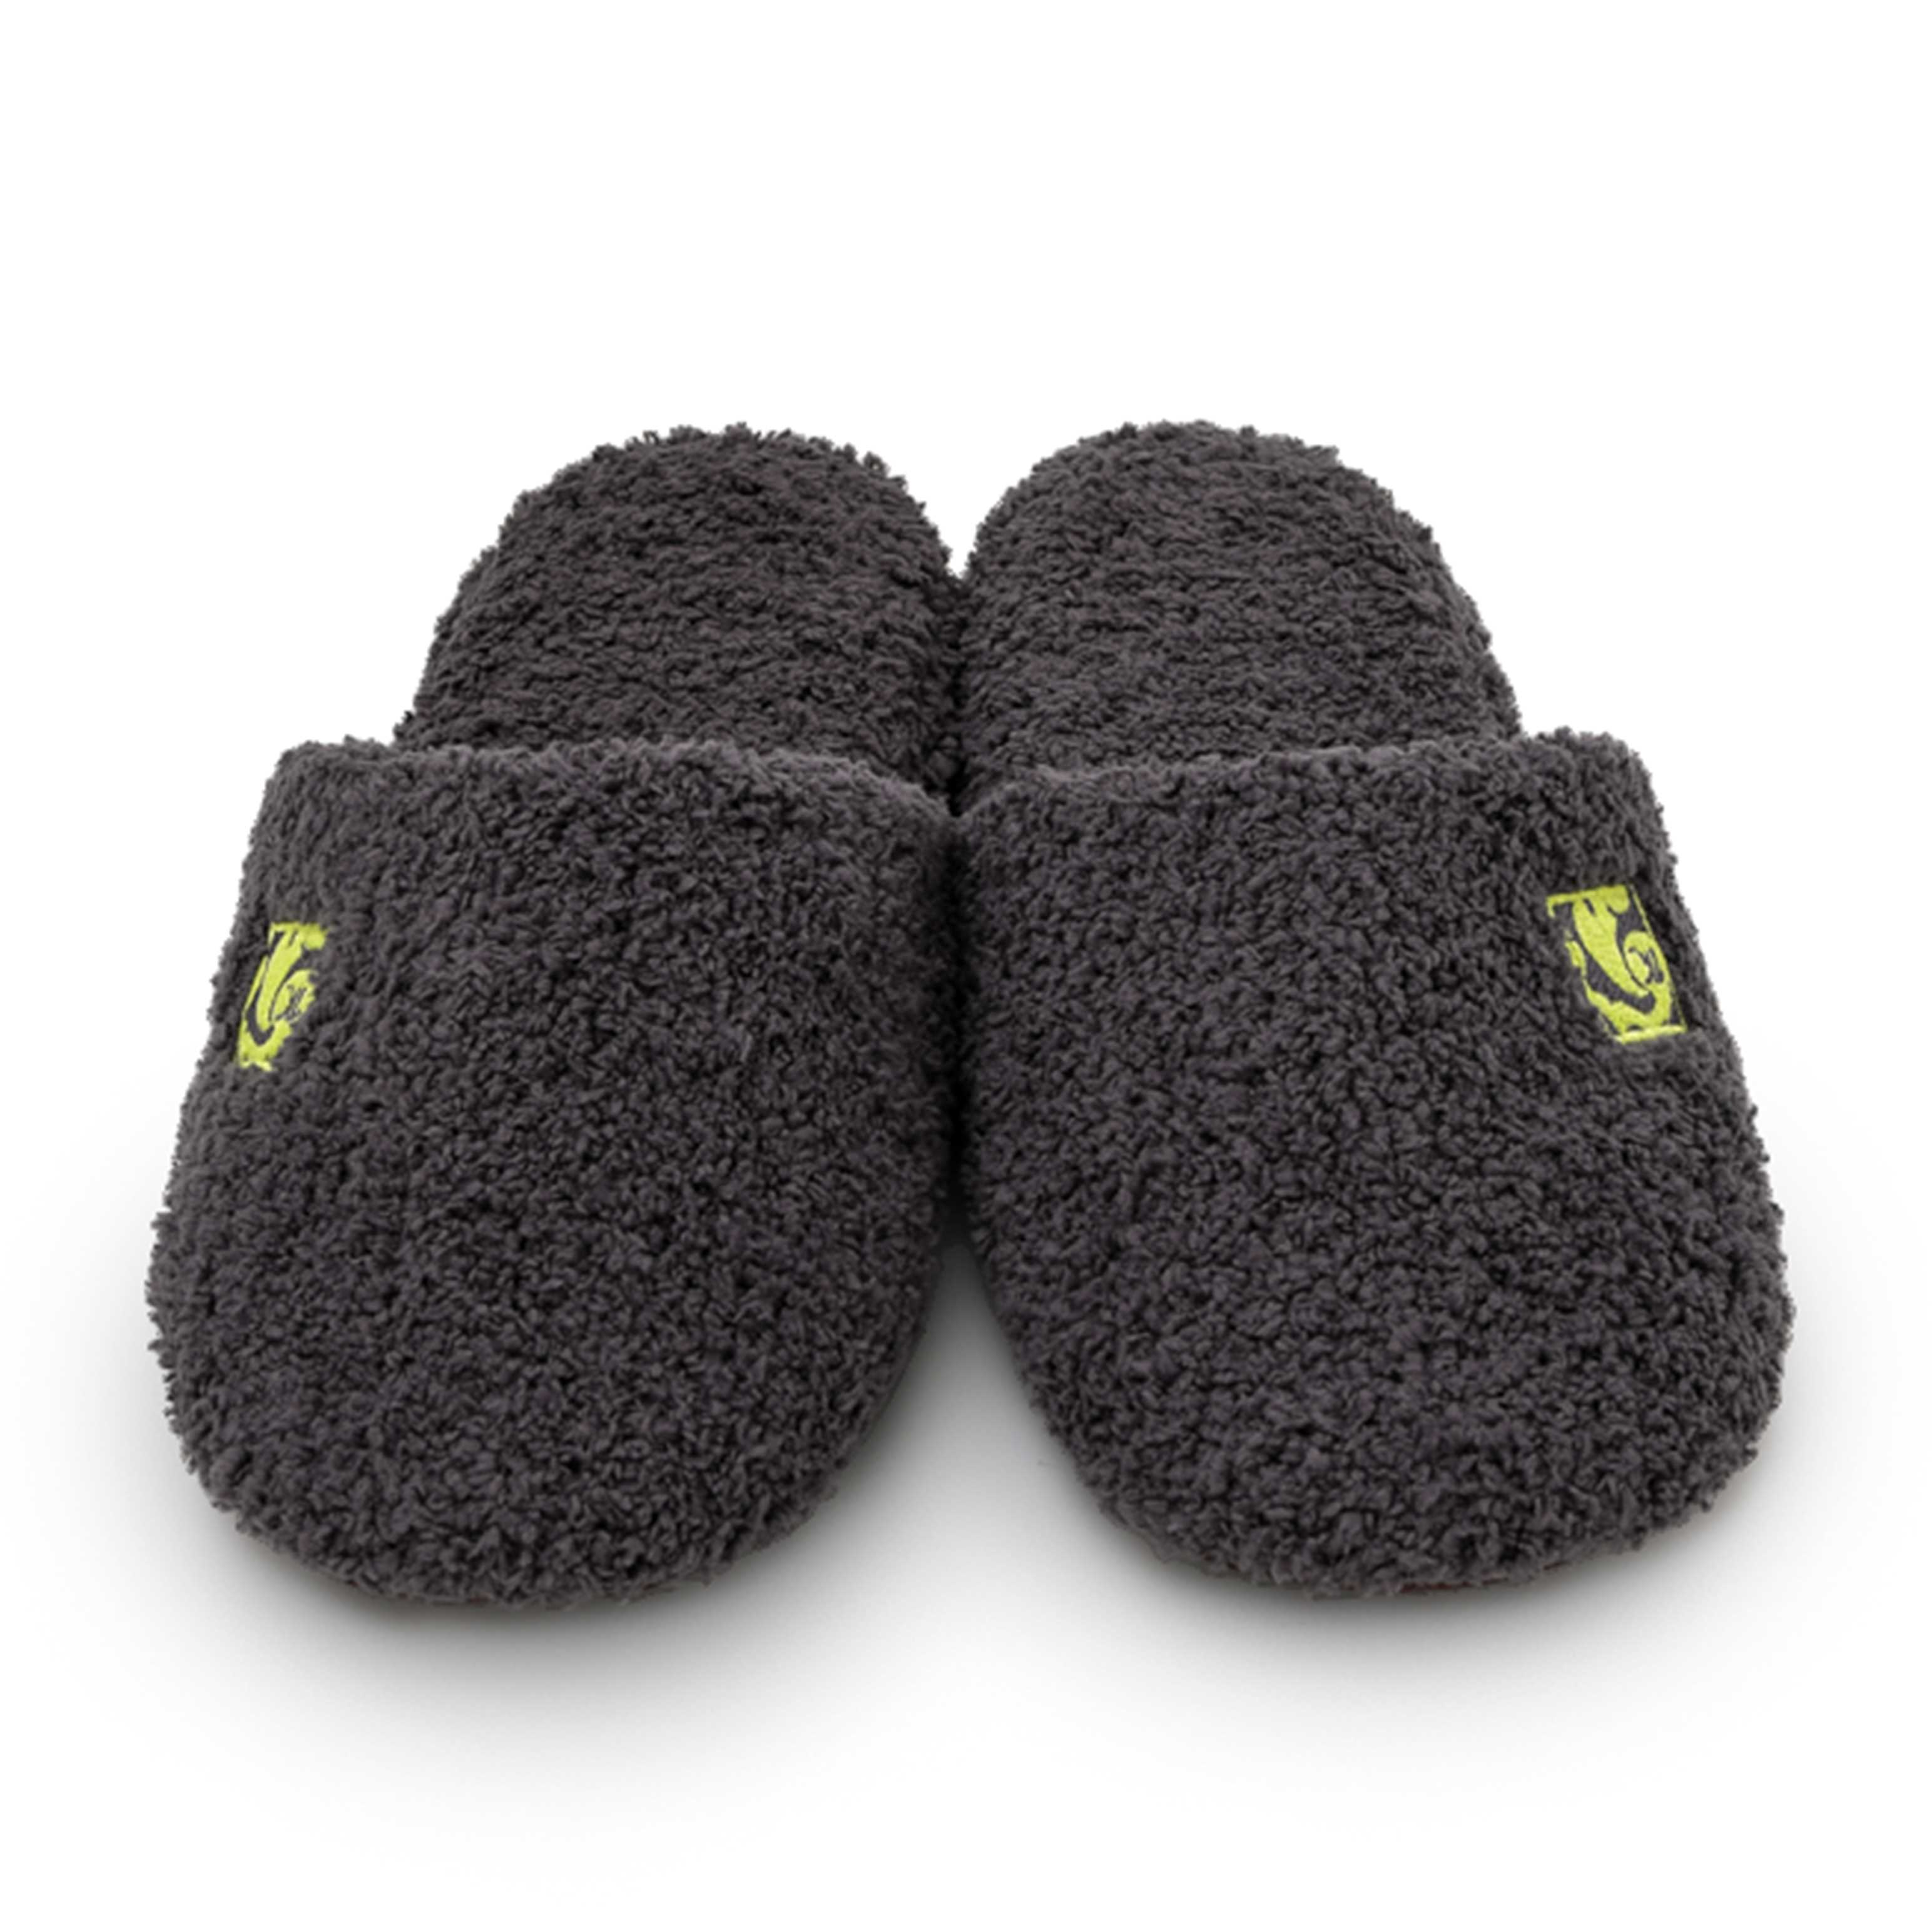 SLIPPERS (SOFT)